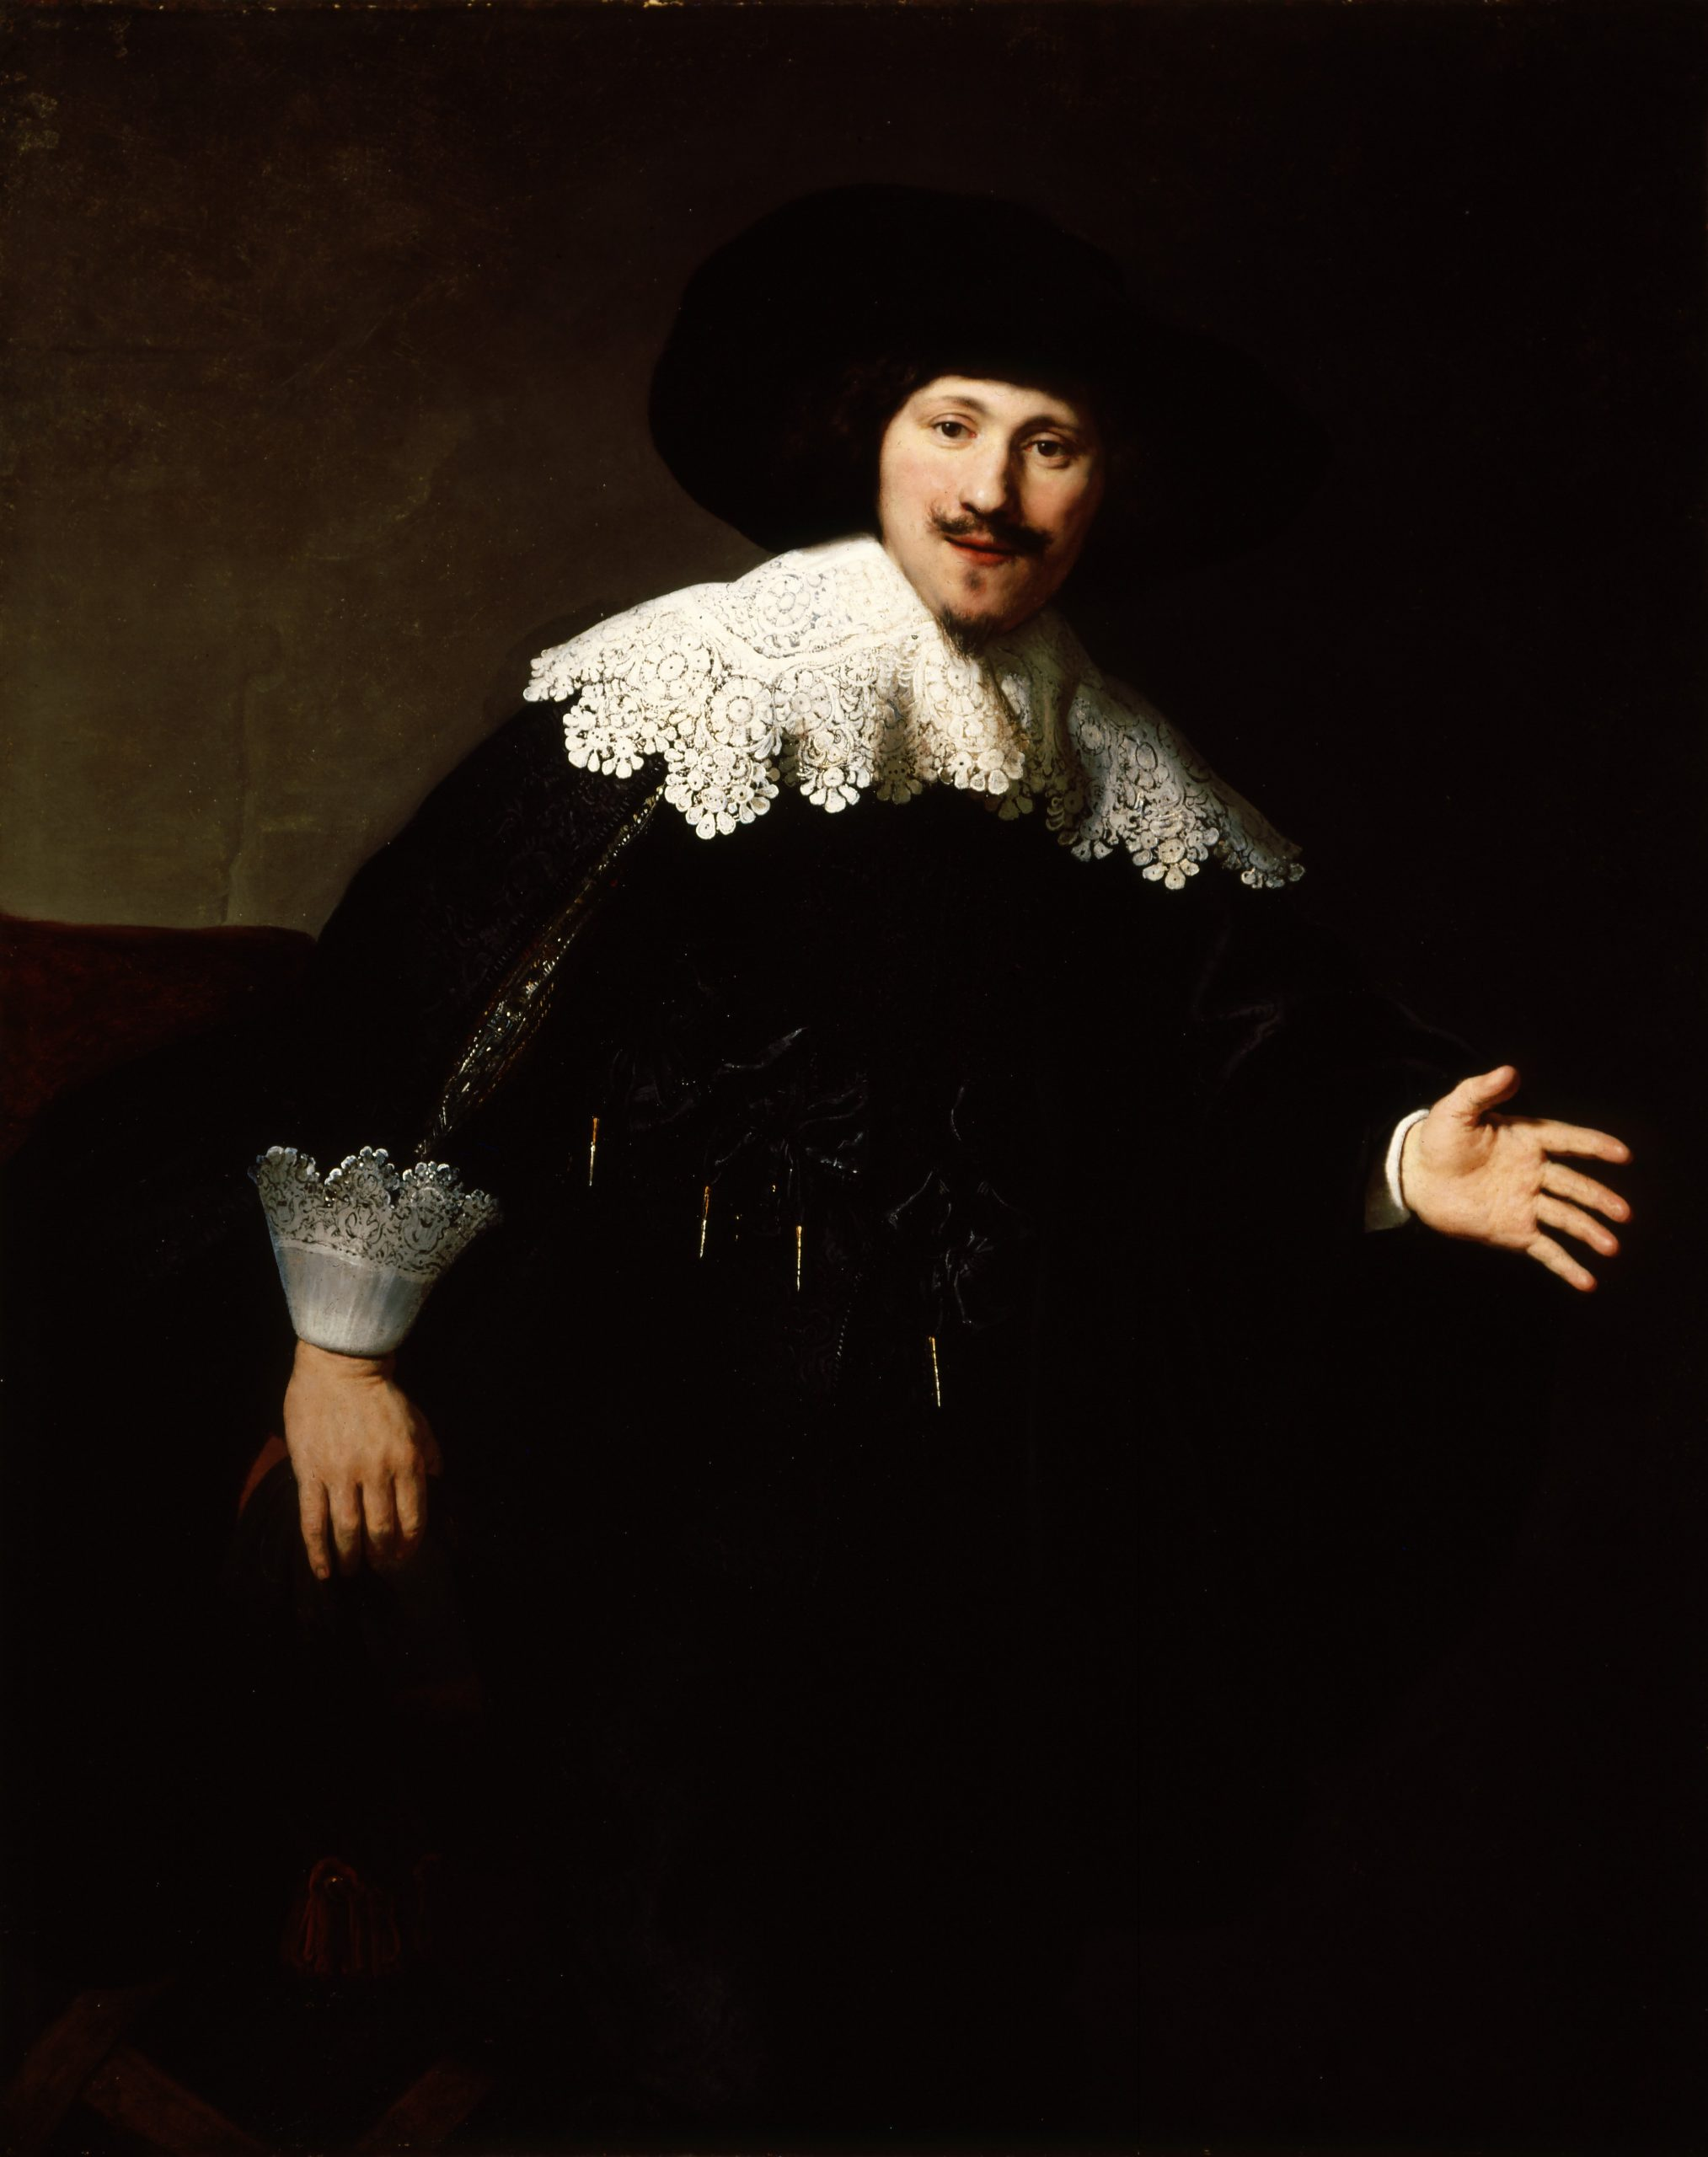 1 Rembrandt_-_Portrait_of_a_Man_Rising_from_his_Chair_-_1633